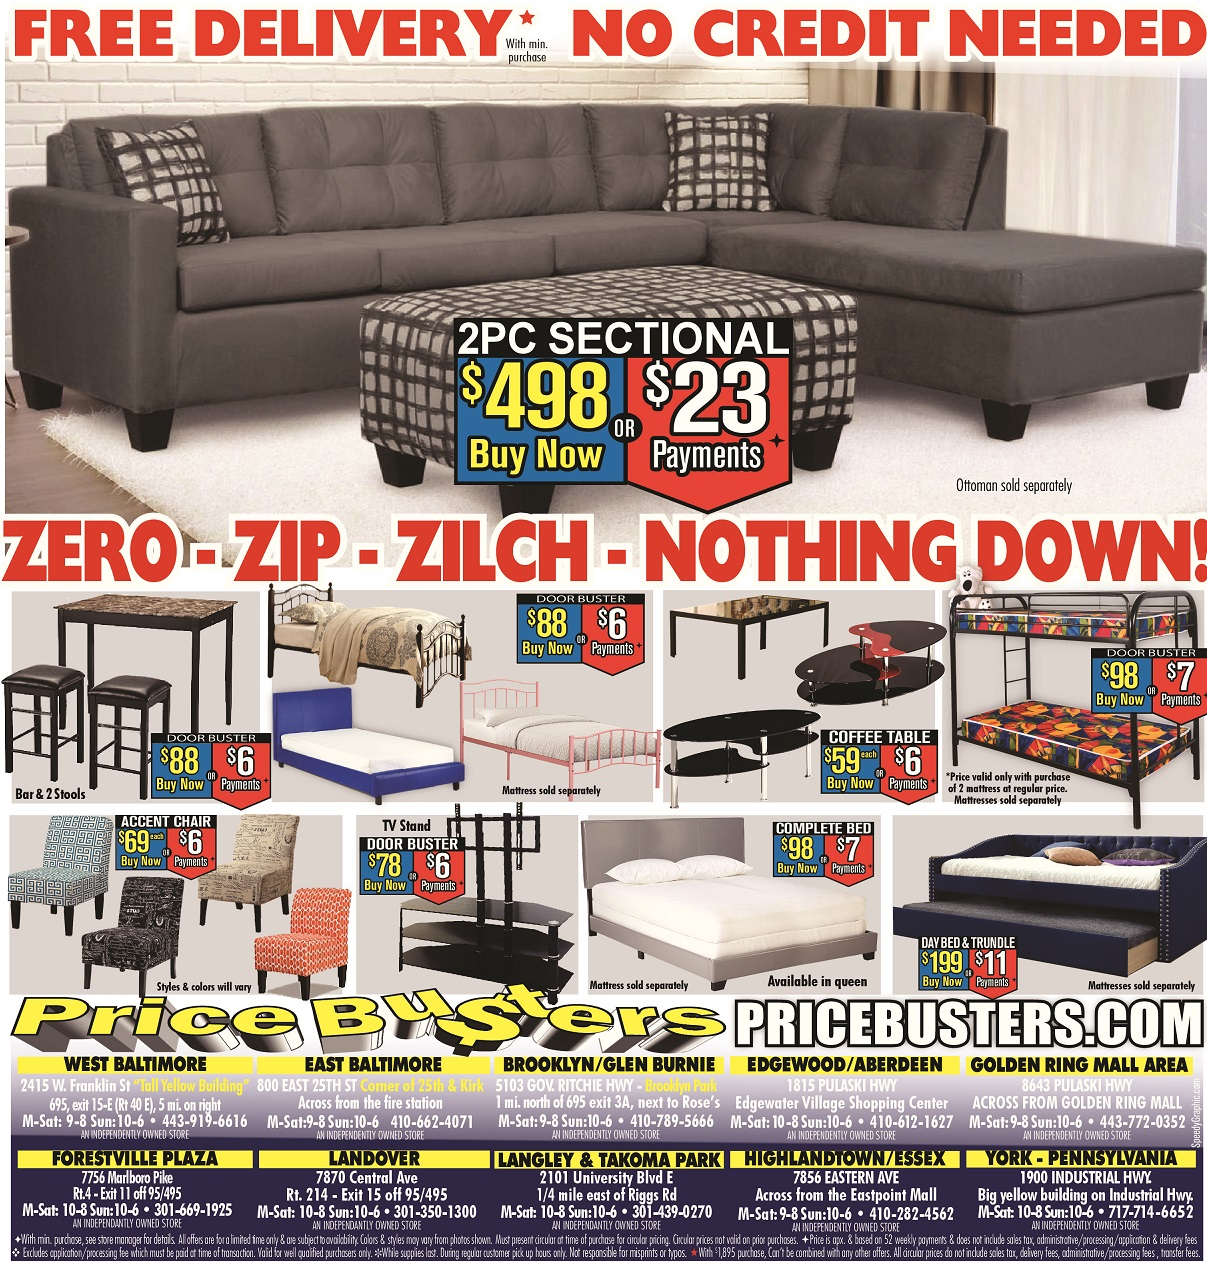 Price Busters Discount Furniture 9 East 9th Street Baltimore